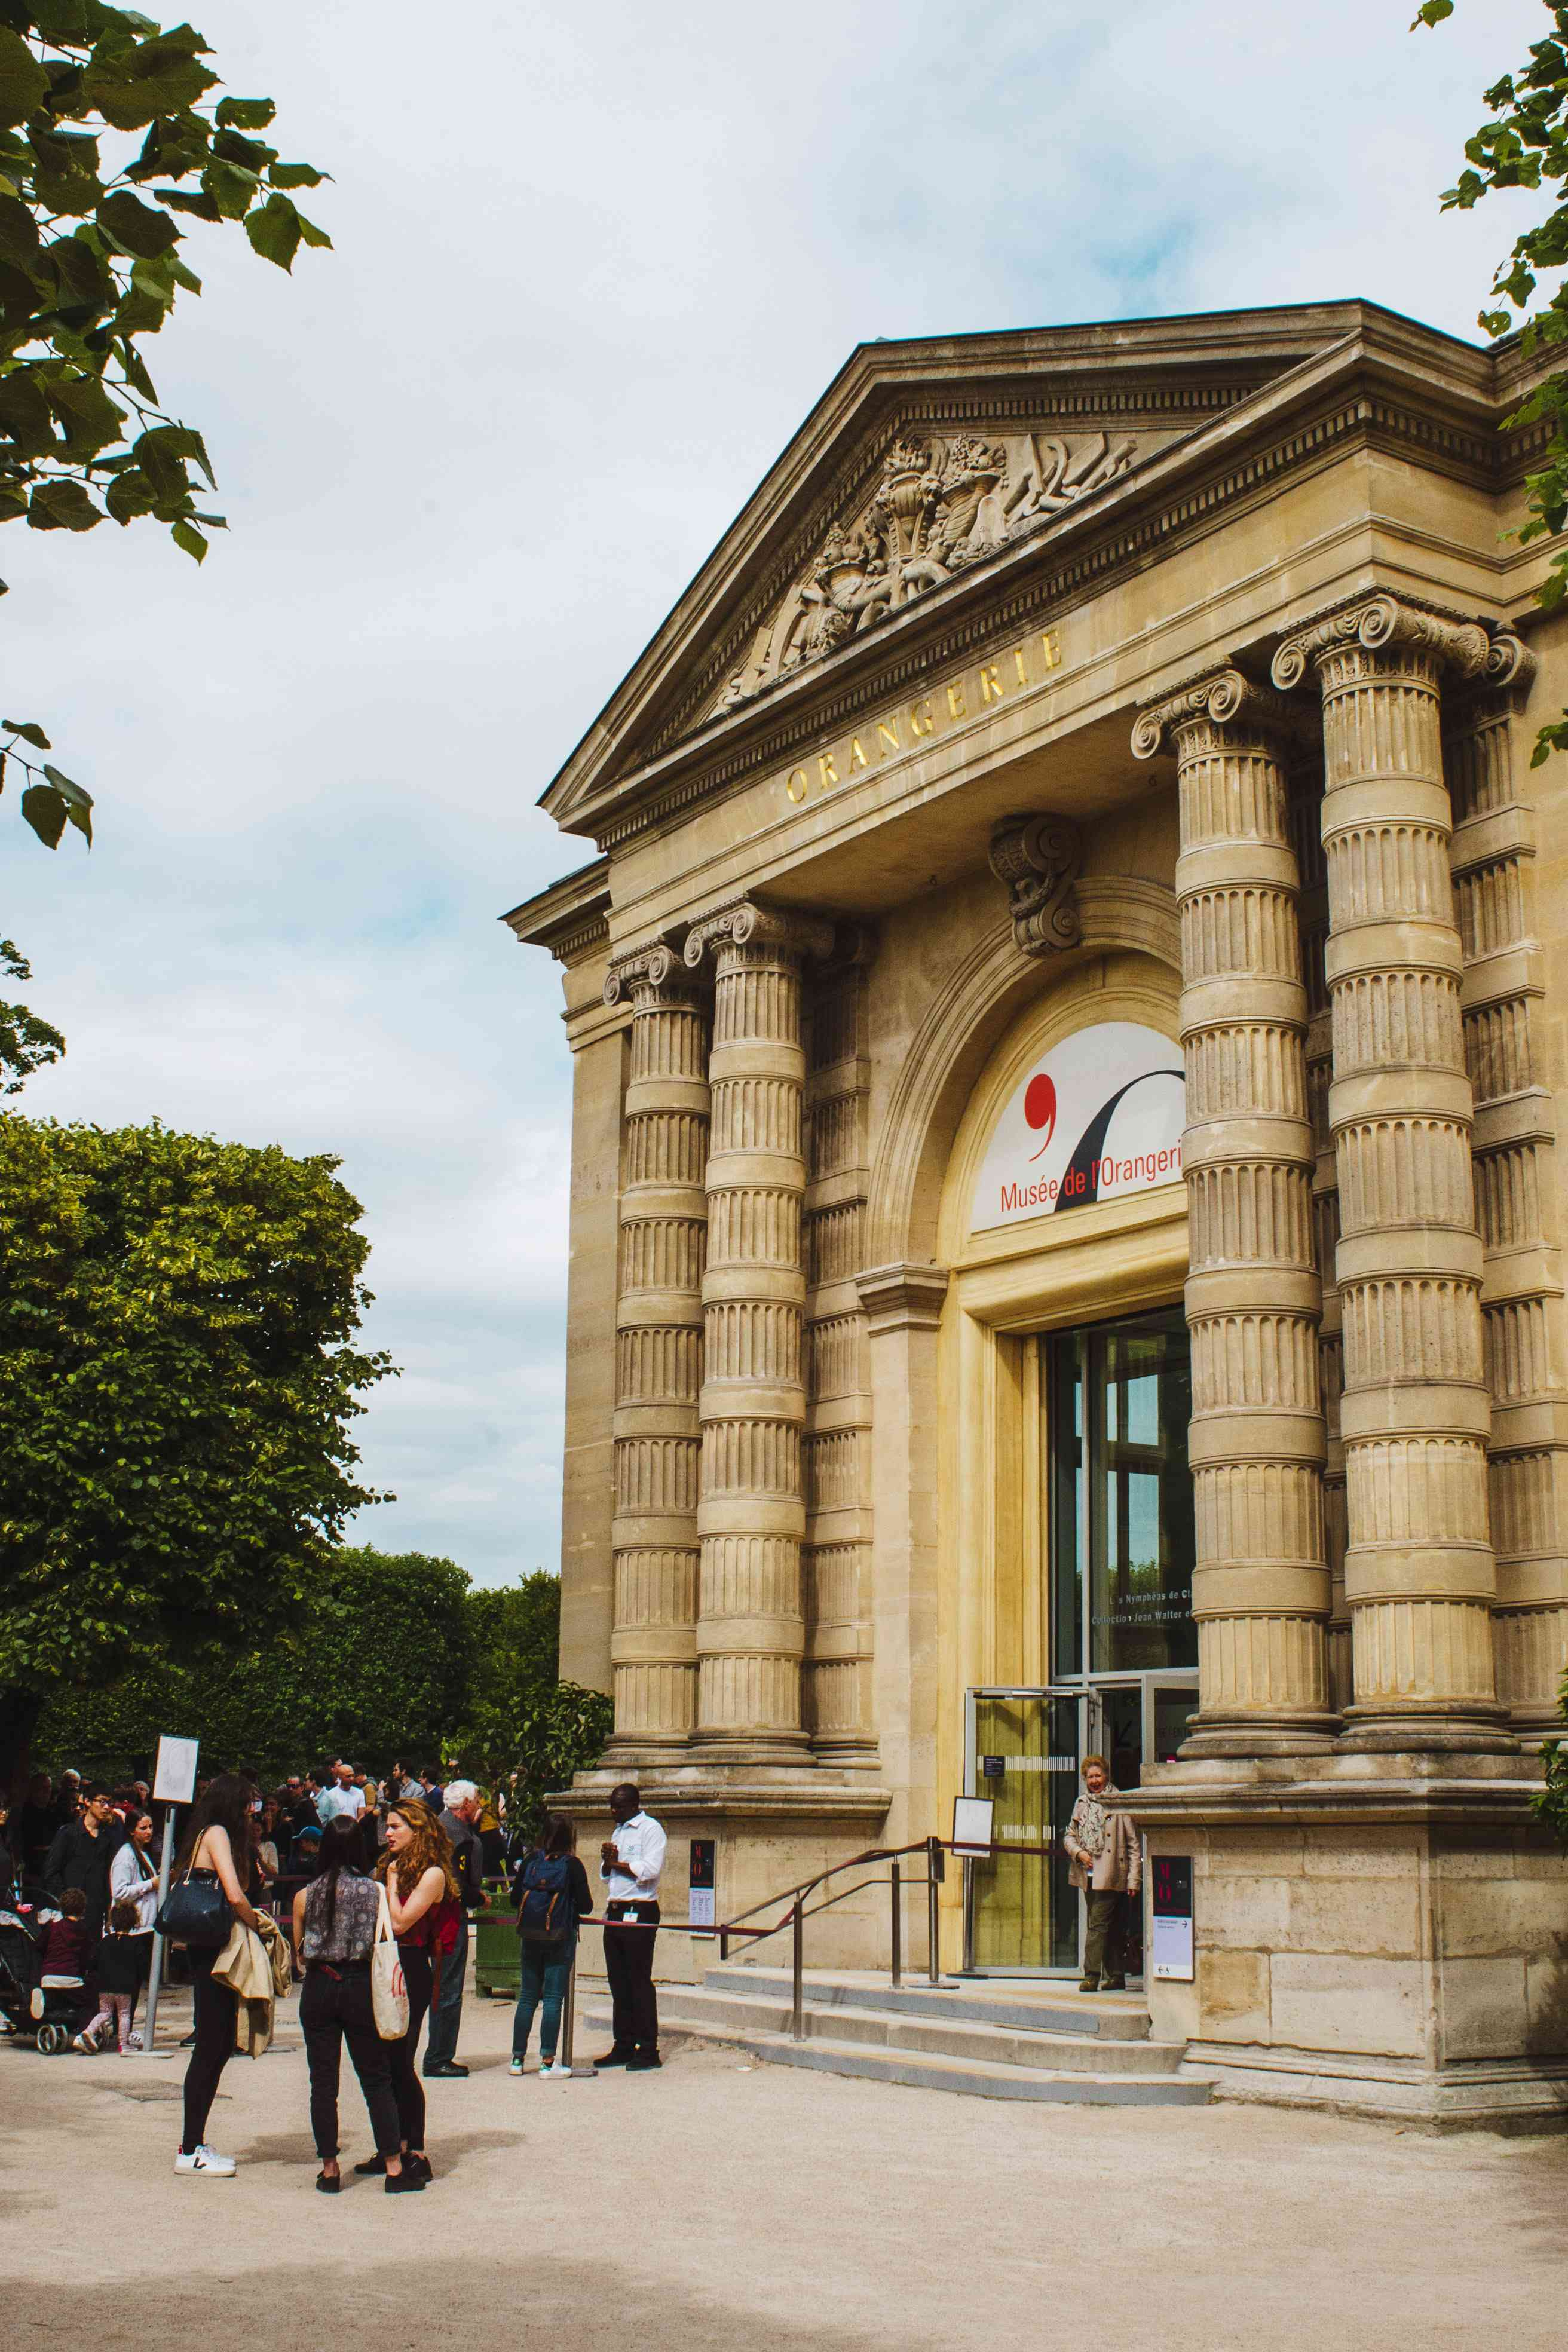 Entrance to the Orangerie museum